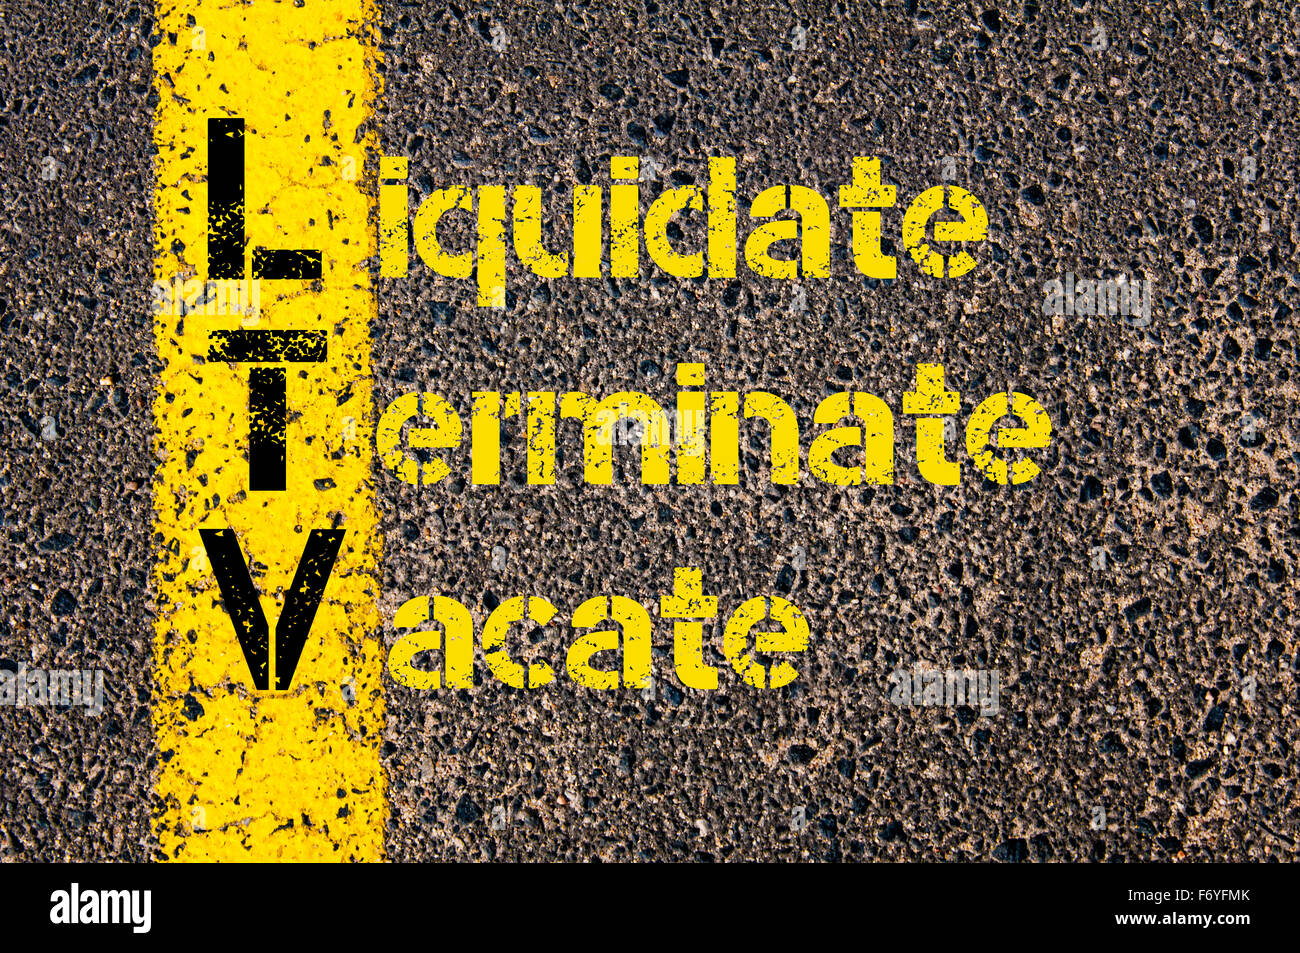 Concept image of Business Acronym LTV as Liquidate, Terminate, Vacate written over road marking yellow paint line. - Stock Image